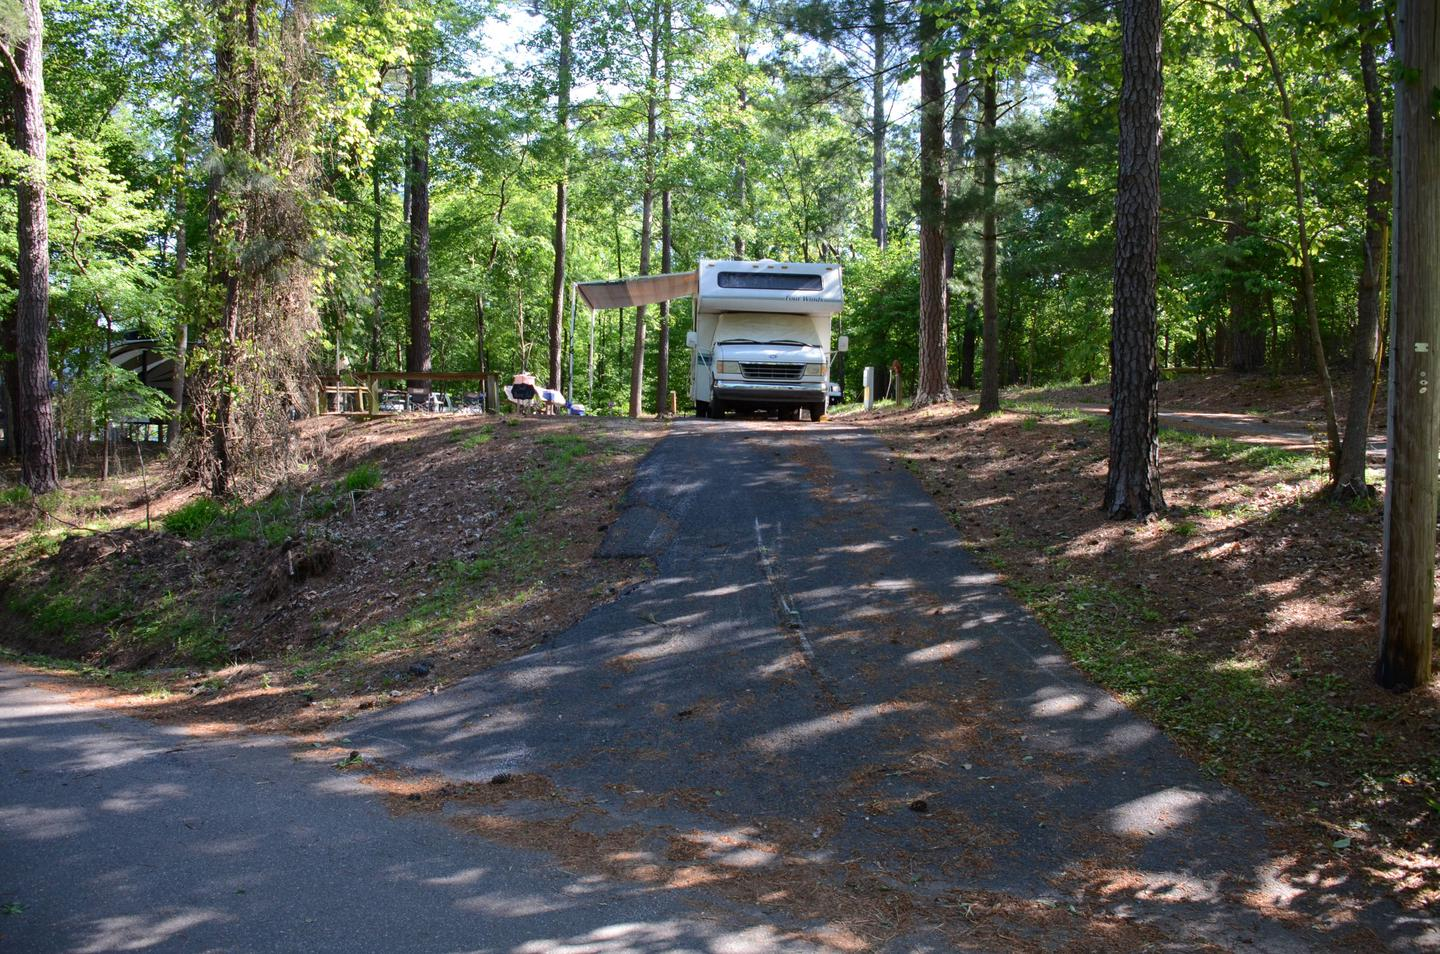 Driveway (pull-thru), utilities-side clearanceMcKinney Campground, campsite 33